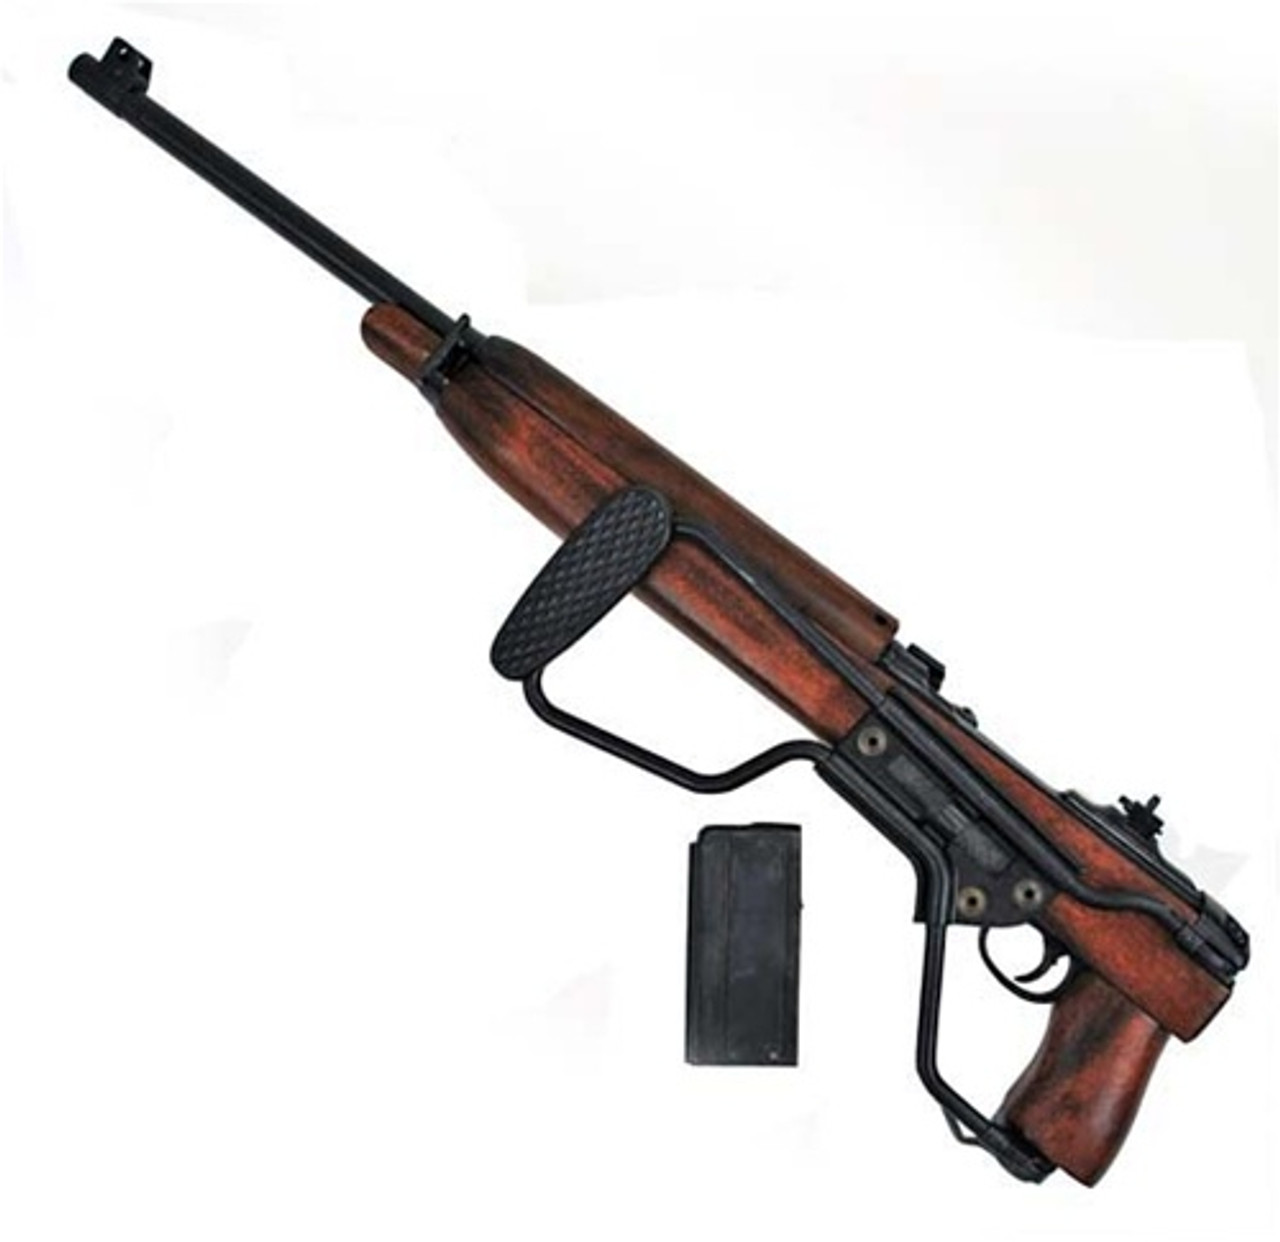 M1A1 Carbine - Paratrooper Model from Hessen Antique